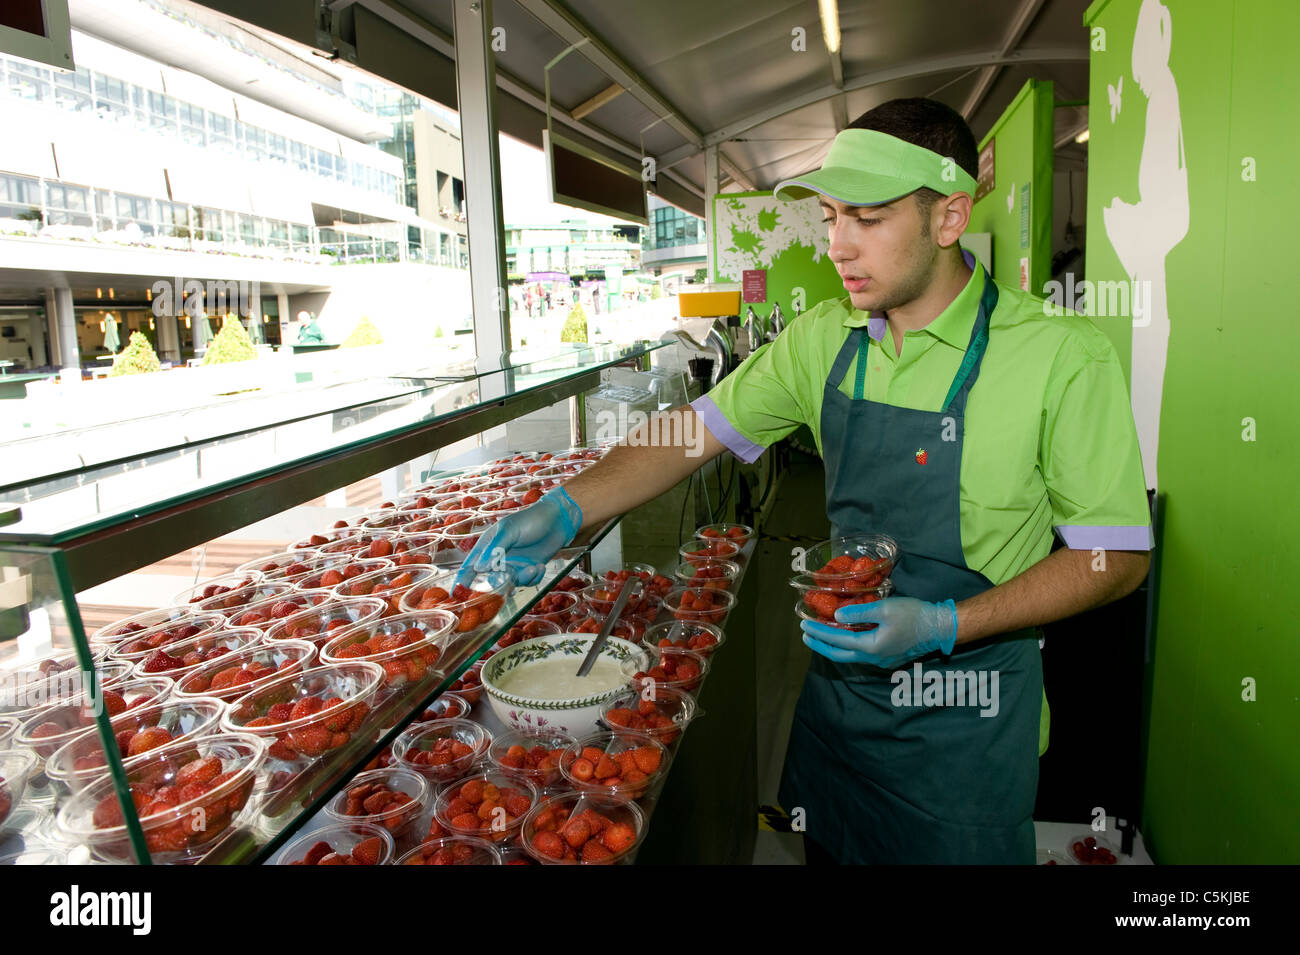 Strawberries are put on display in the Lawn Buffet during the 2009 Wimbledon Tennis Championships - Stock Image